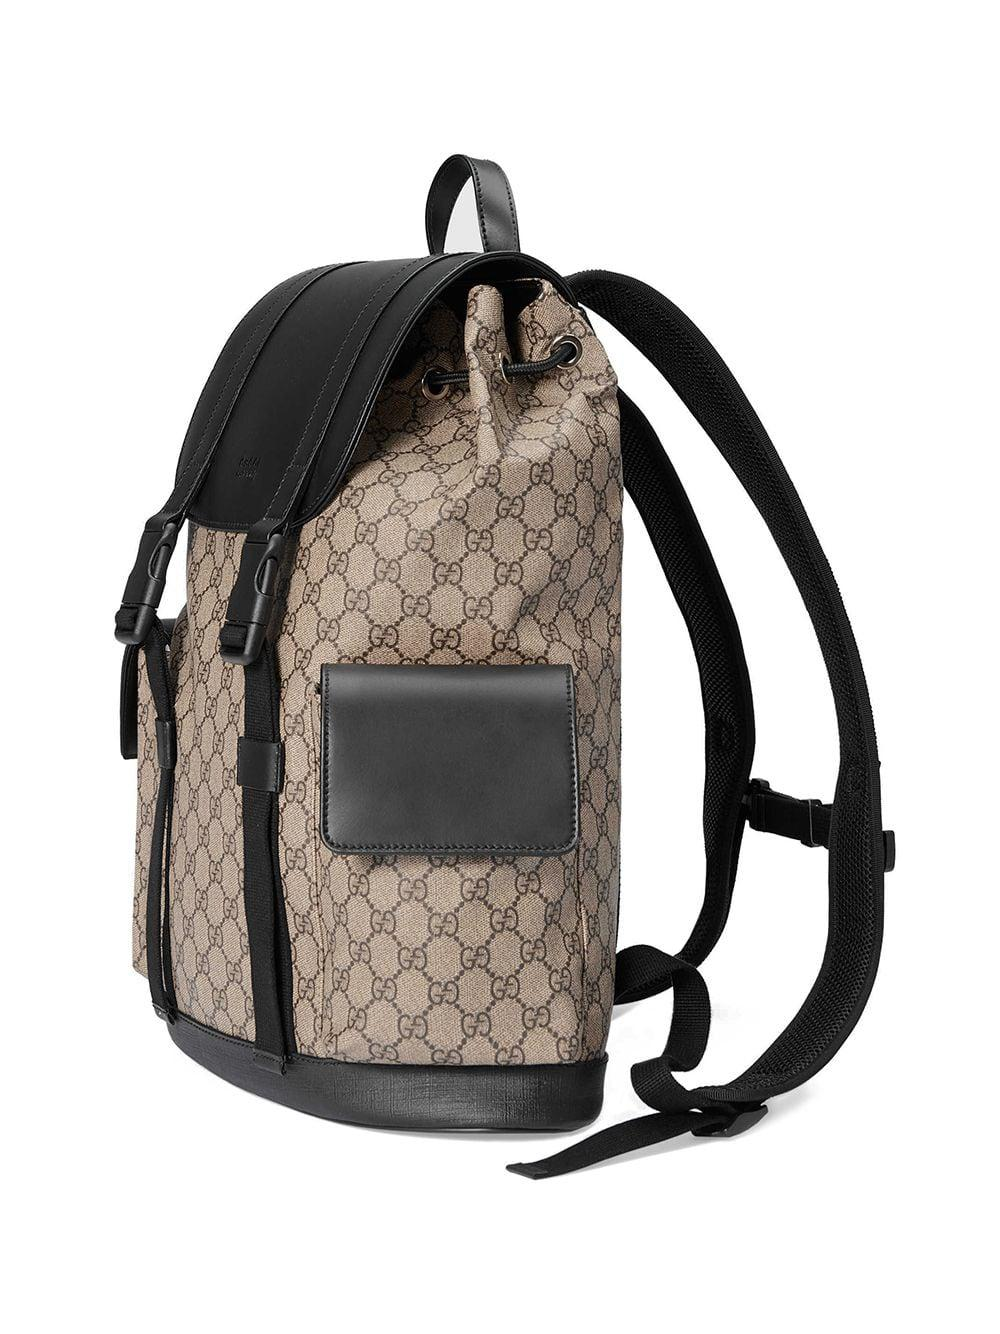 308484a6f22e22 Gucci Soft GG Supreme Backpack in Brown for Men - Lyst